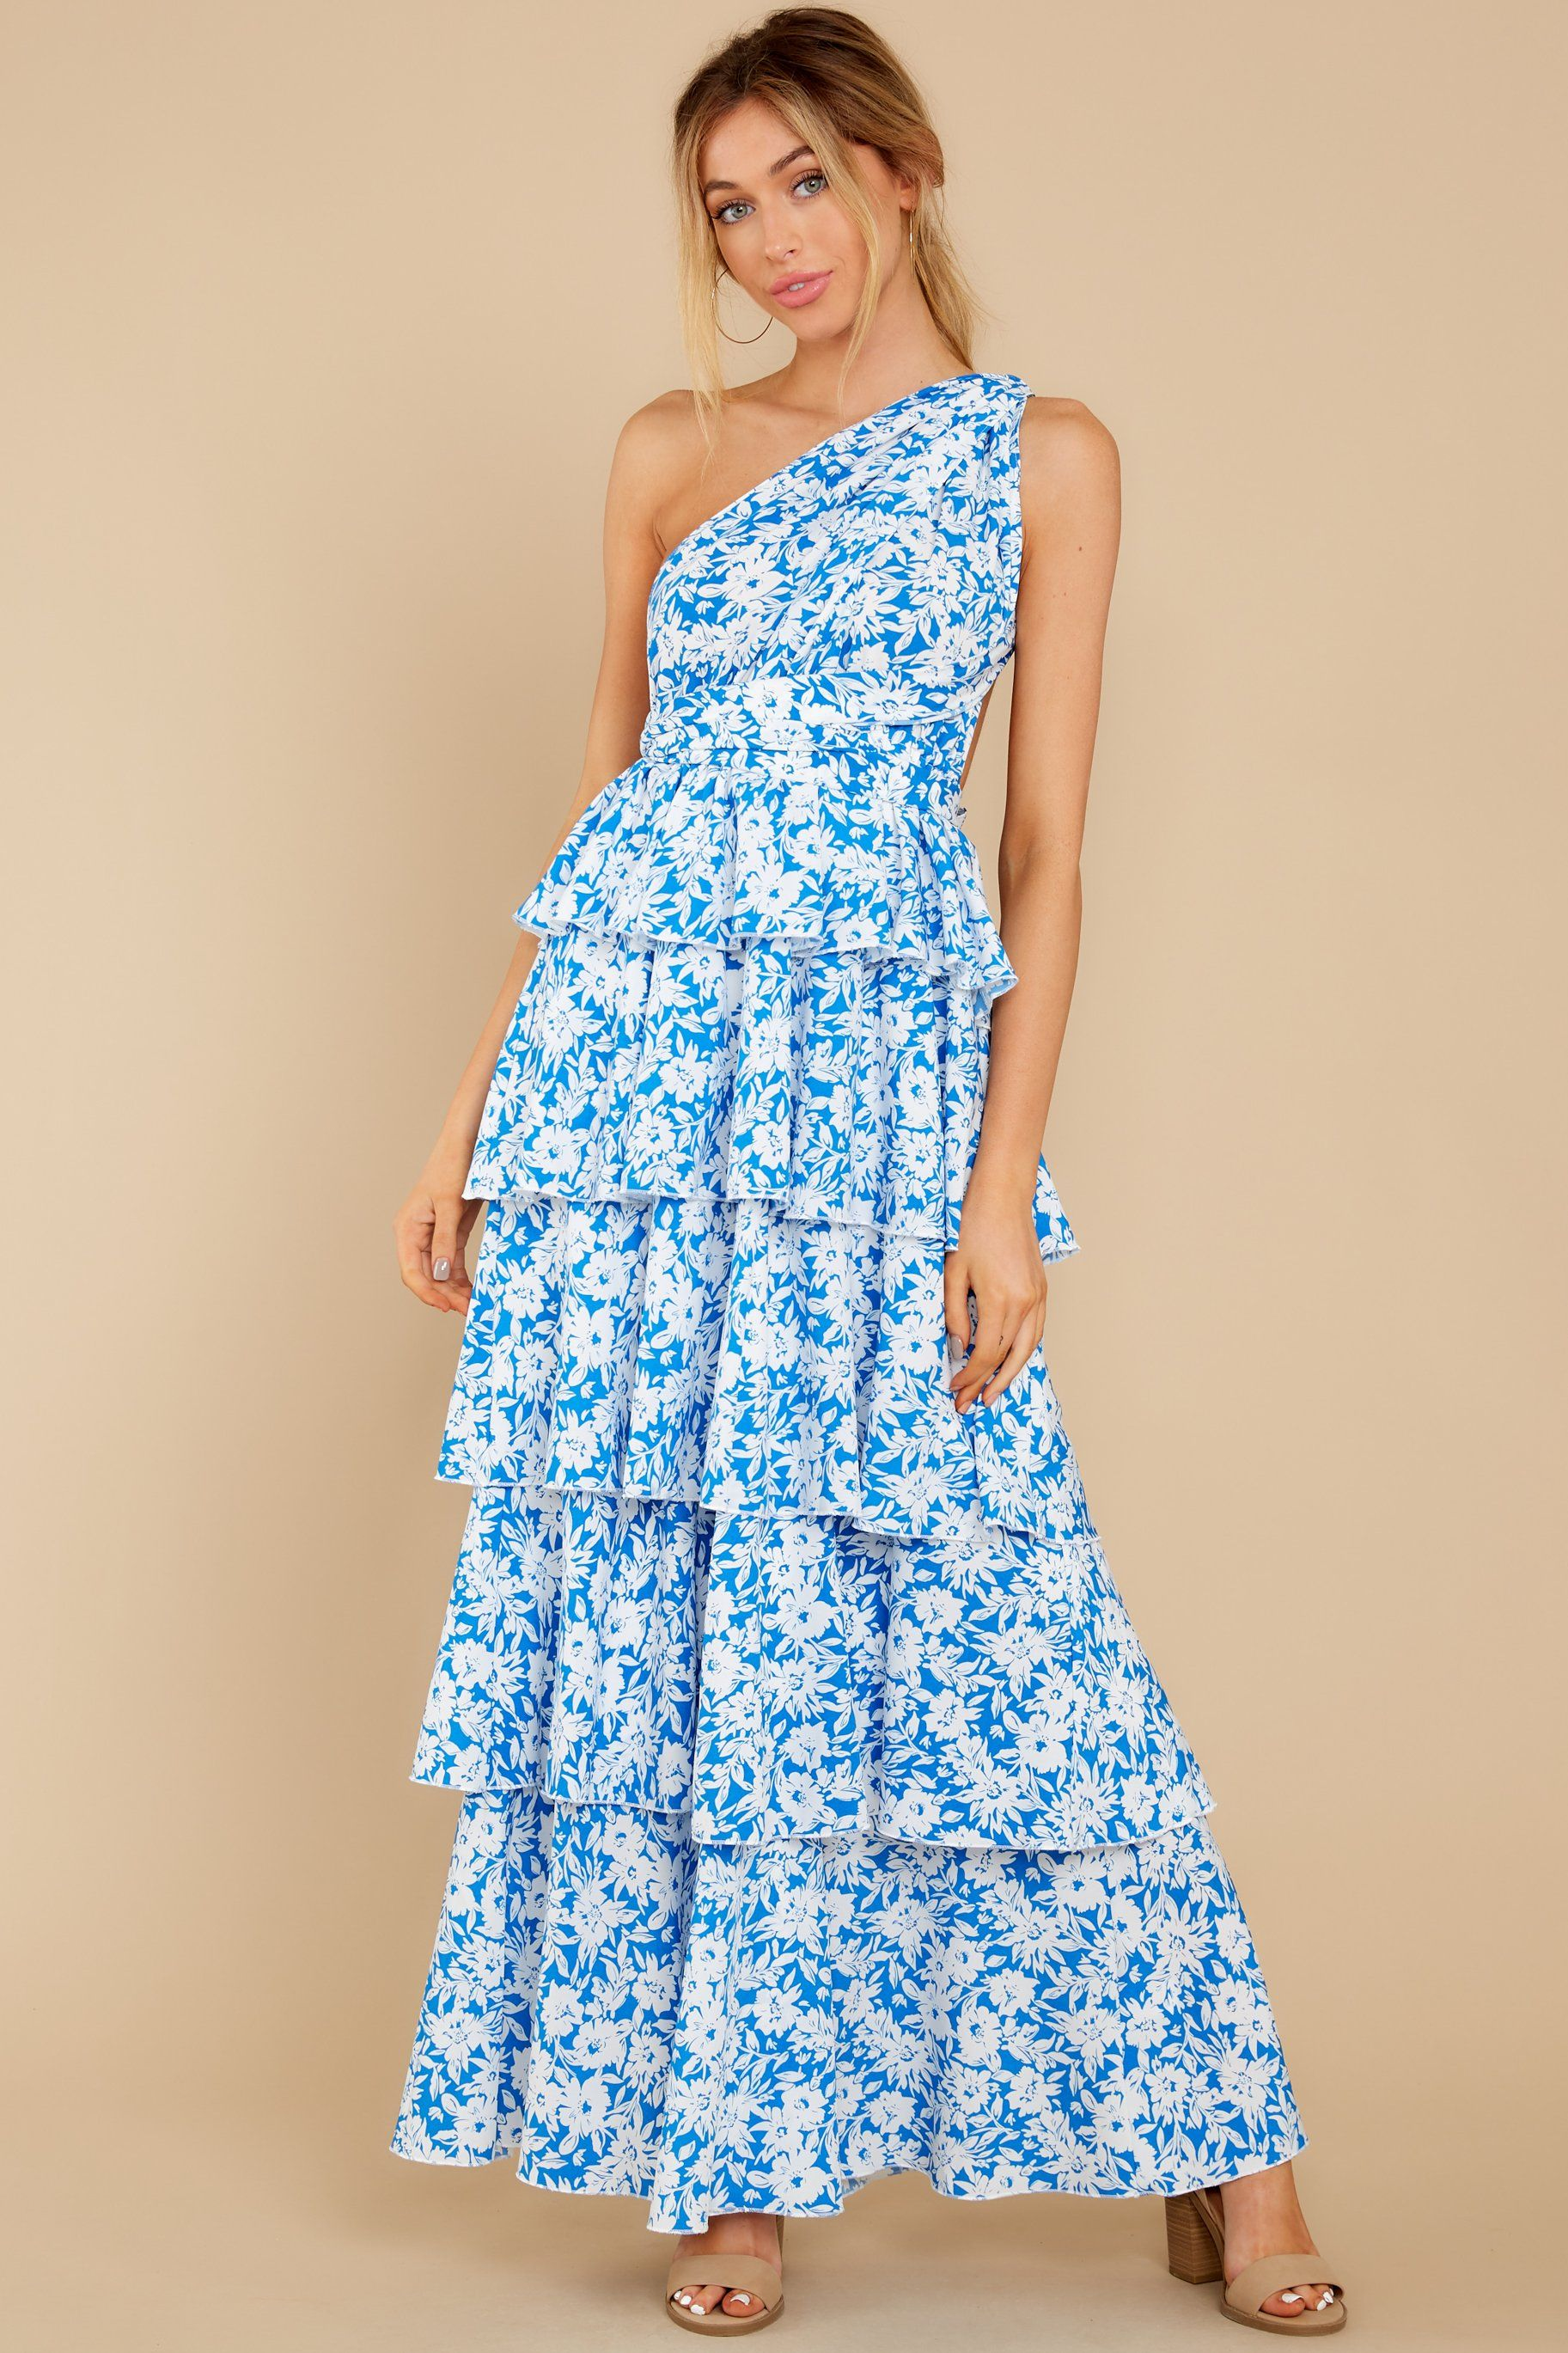 Growing On Me Bright Blue Floral Print Maxi Dress Floral Print Maxi Dress Printed Maxi Dress Shop Red Dress [ 2738 x 1825 Pixel ]